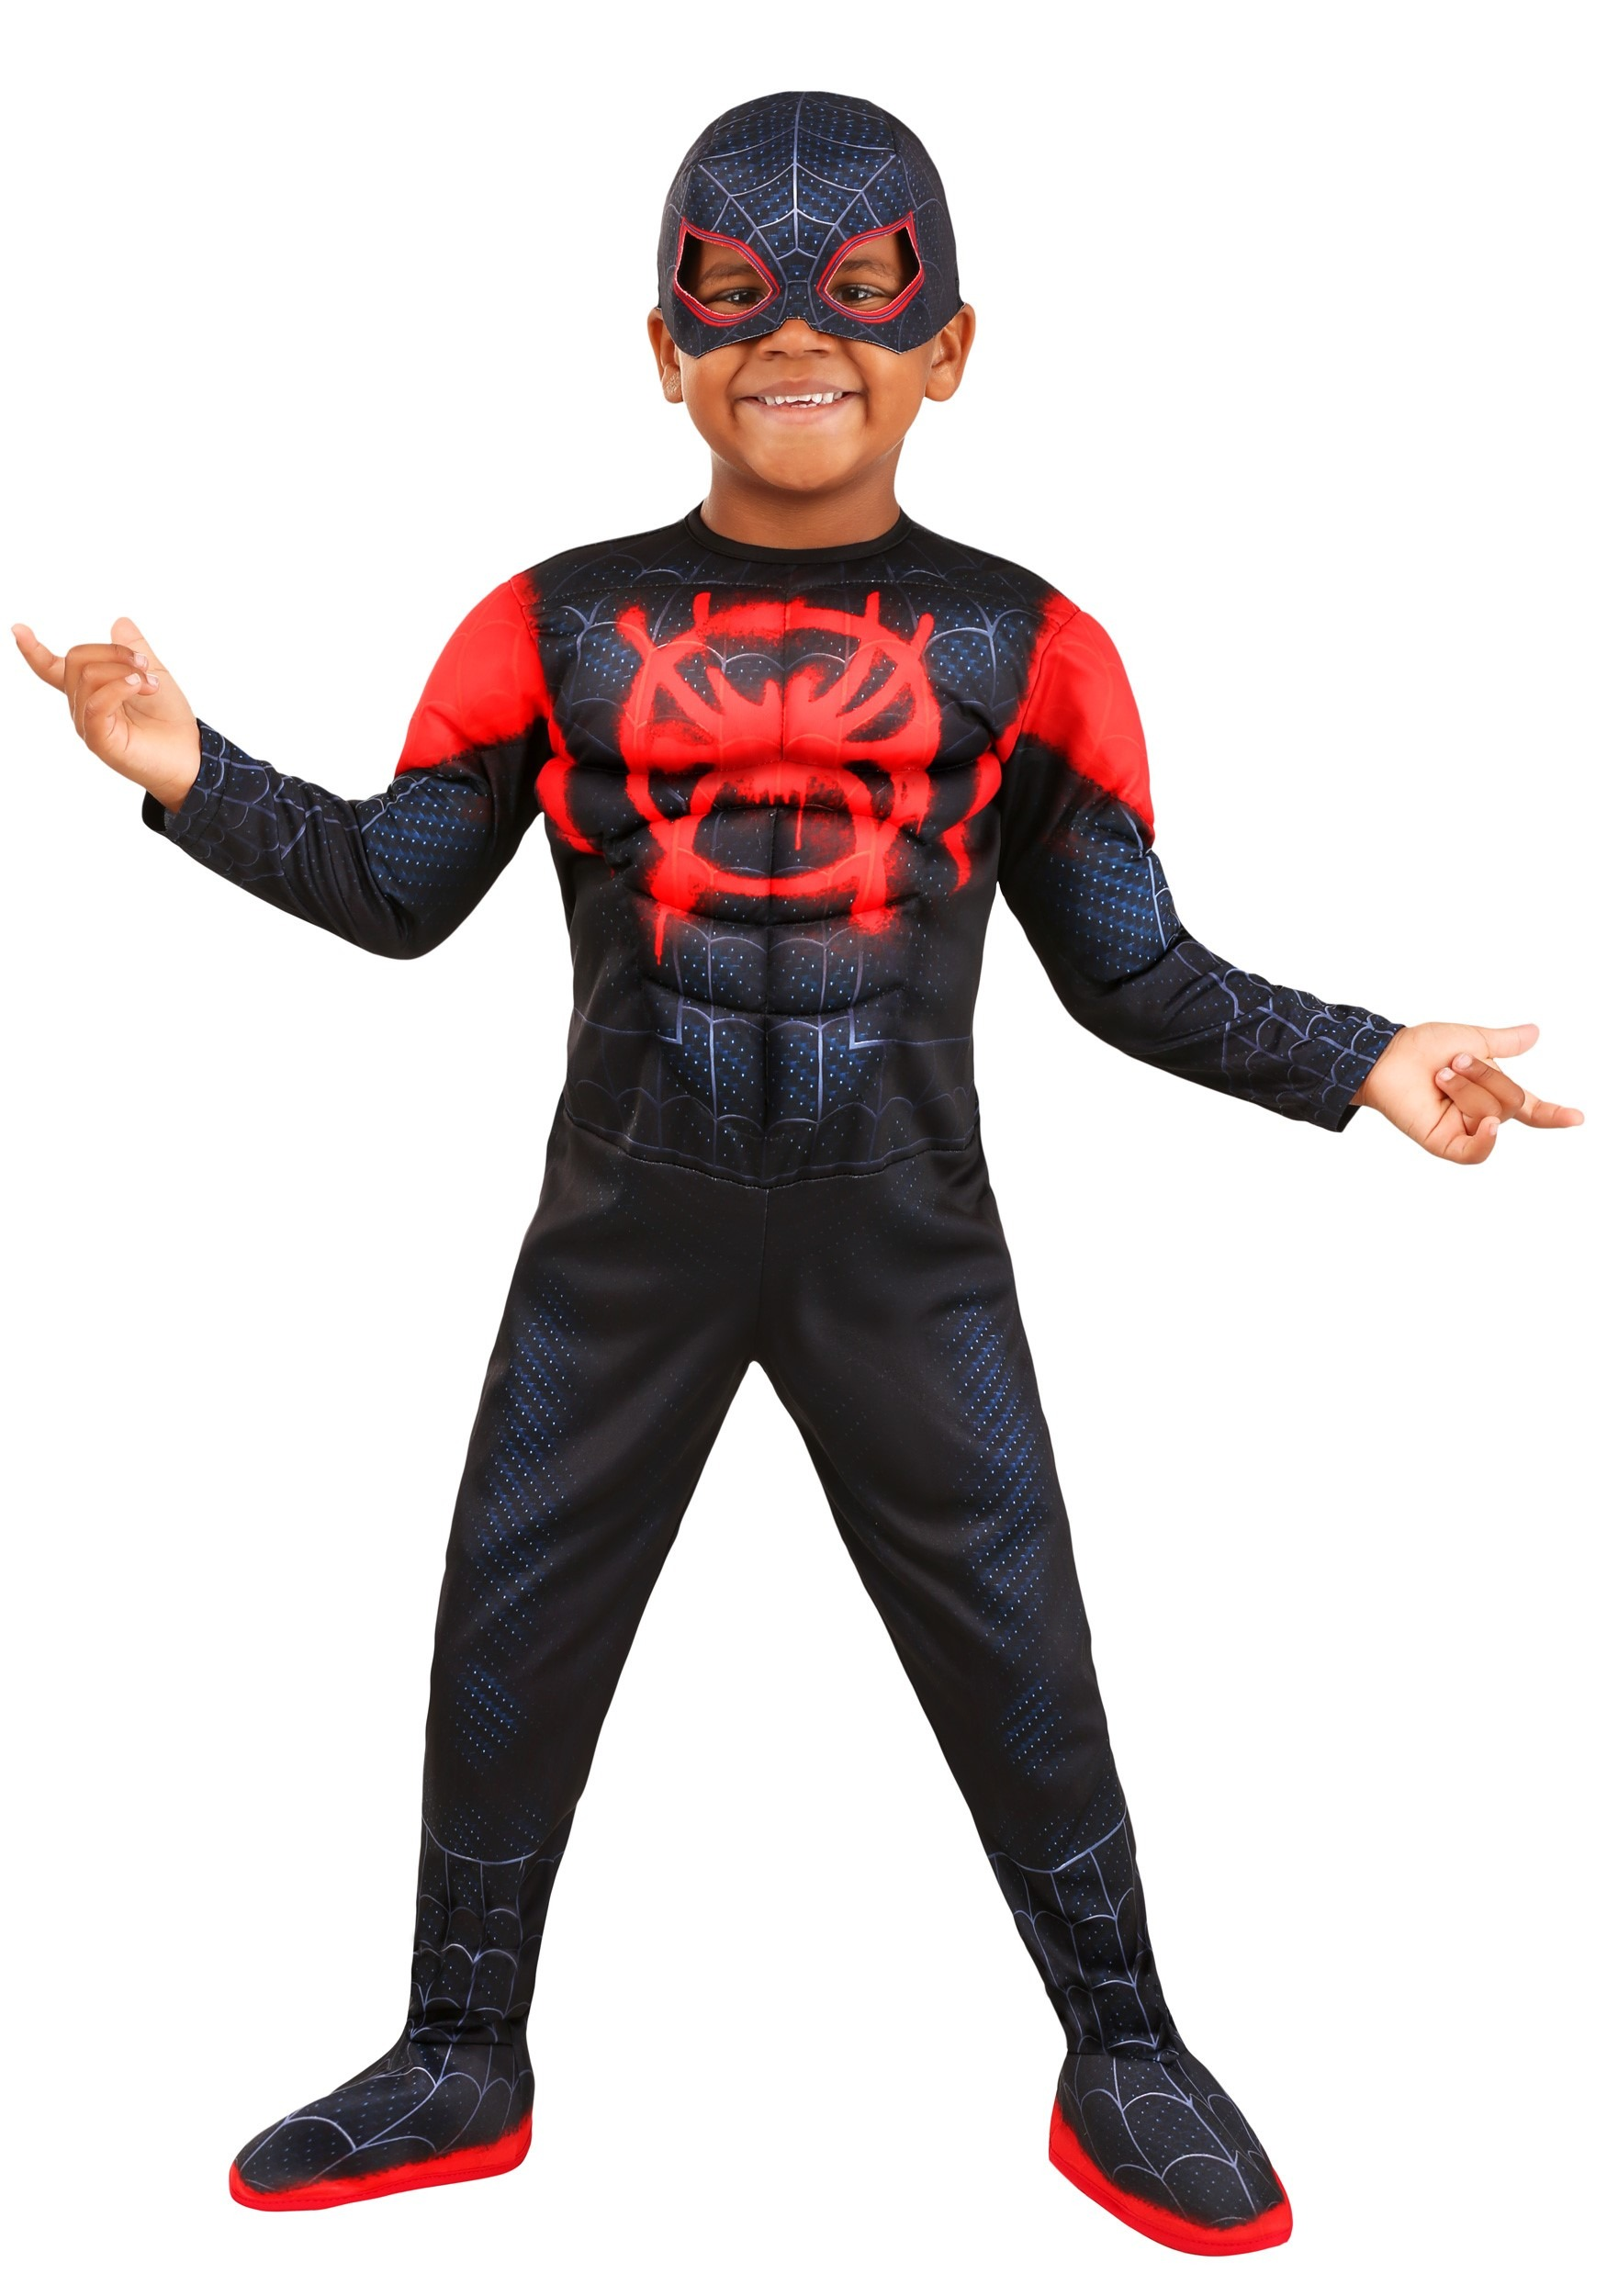 Deluxe Toddler Spiderman Miles Morales Costume